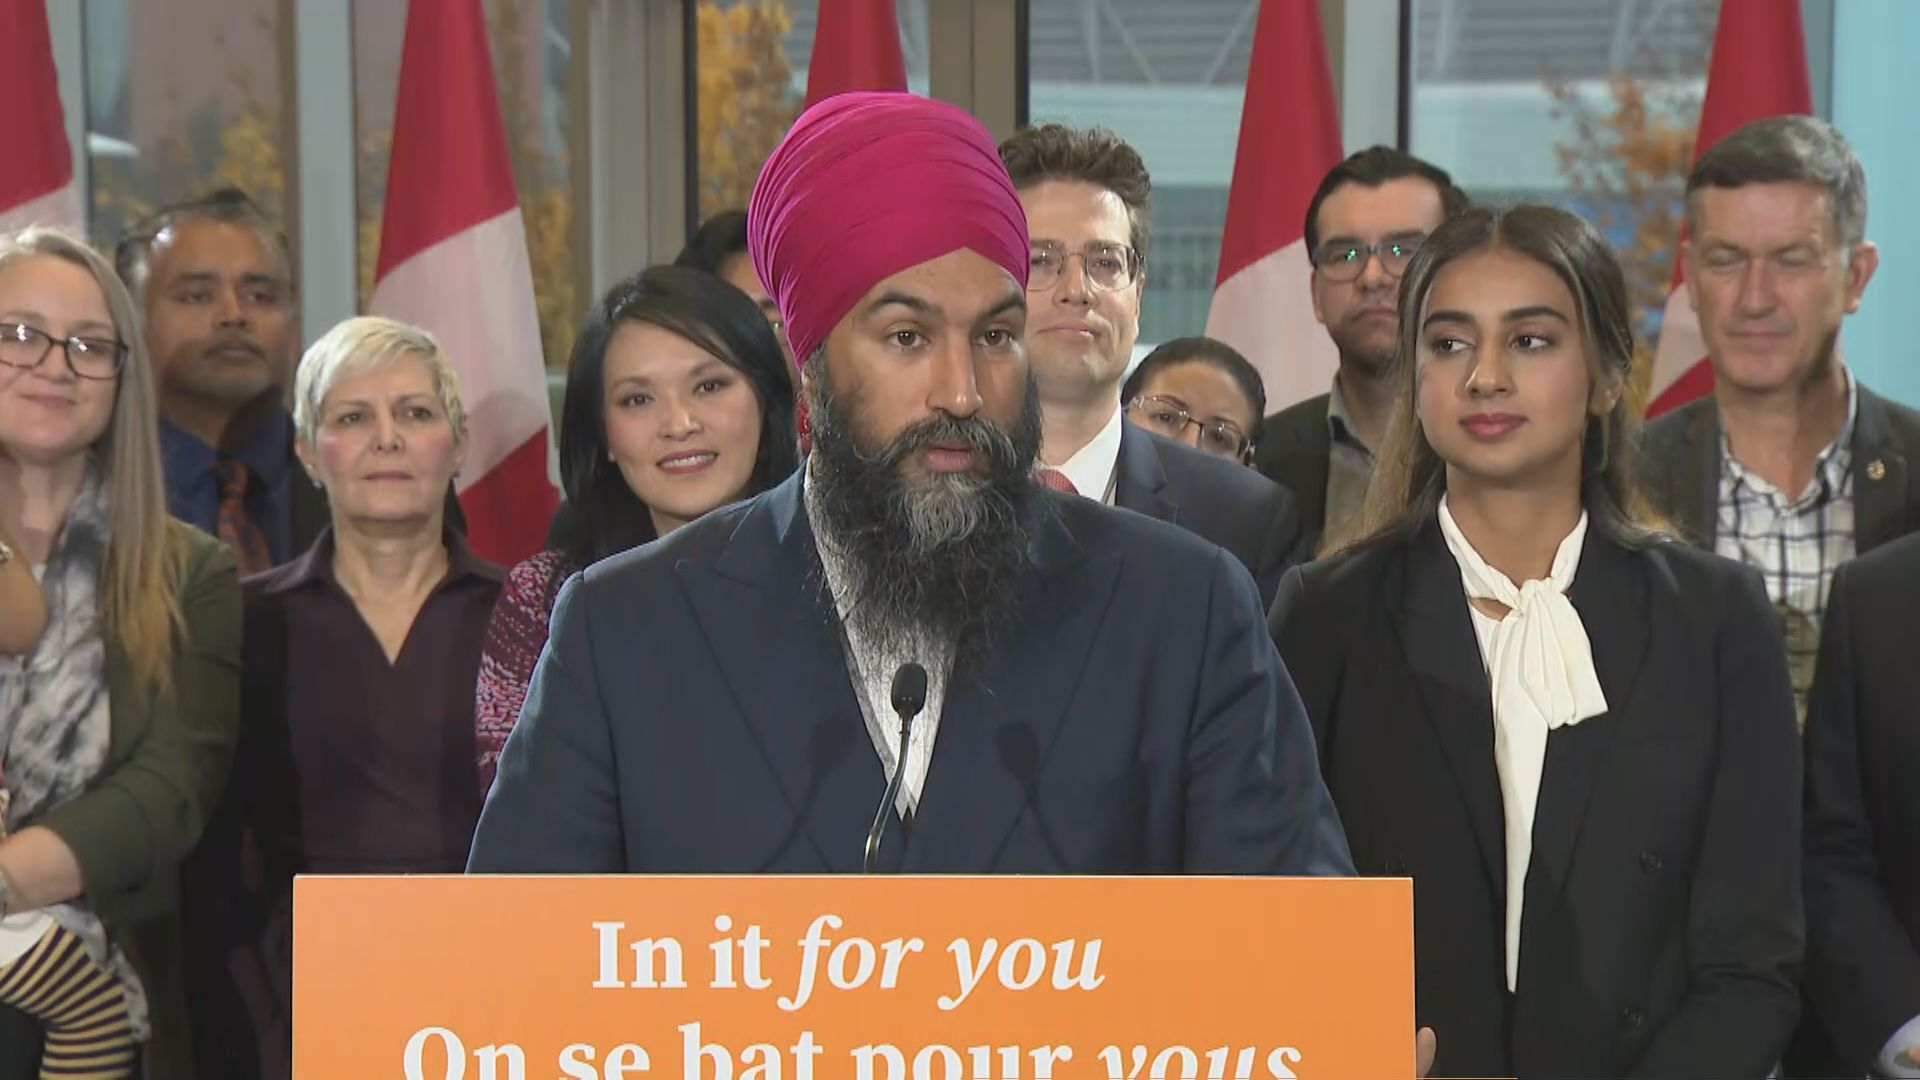 Federal Election 2019: 'I don't really have any regrets' Singh says about campaign as election day nears